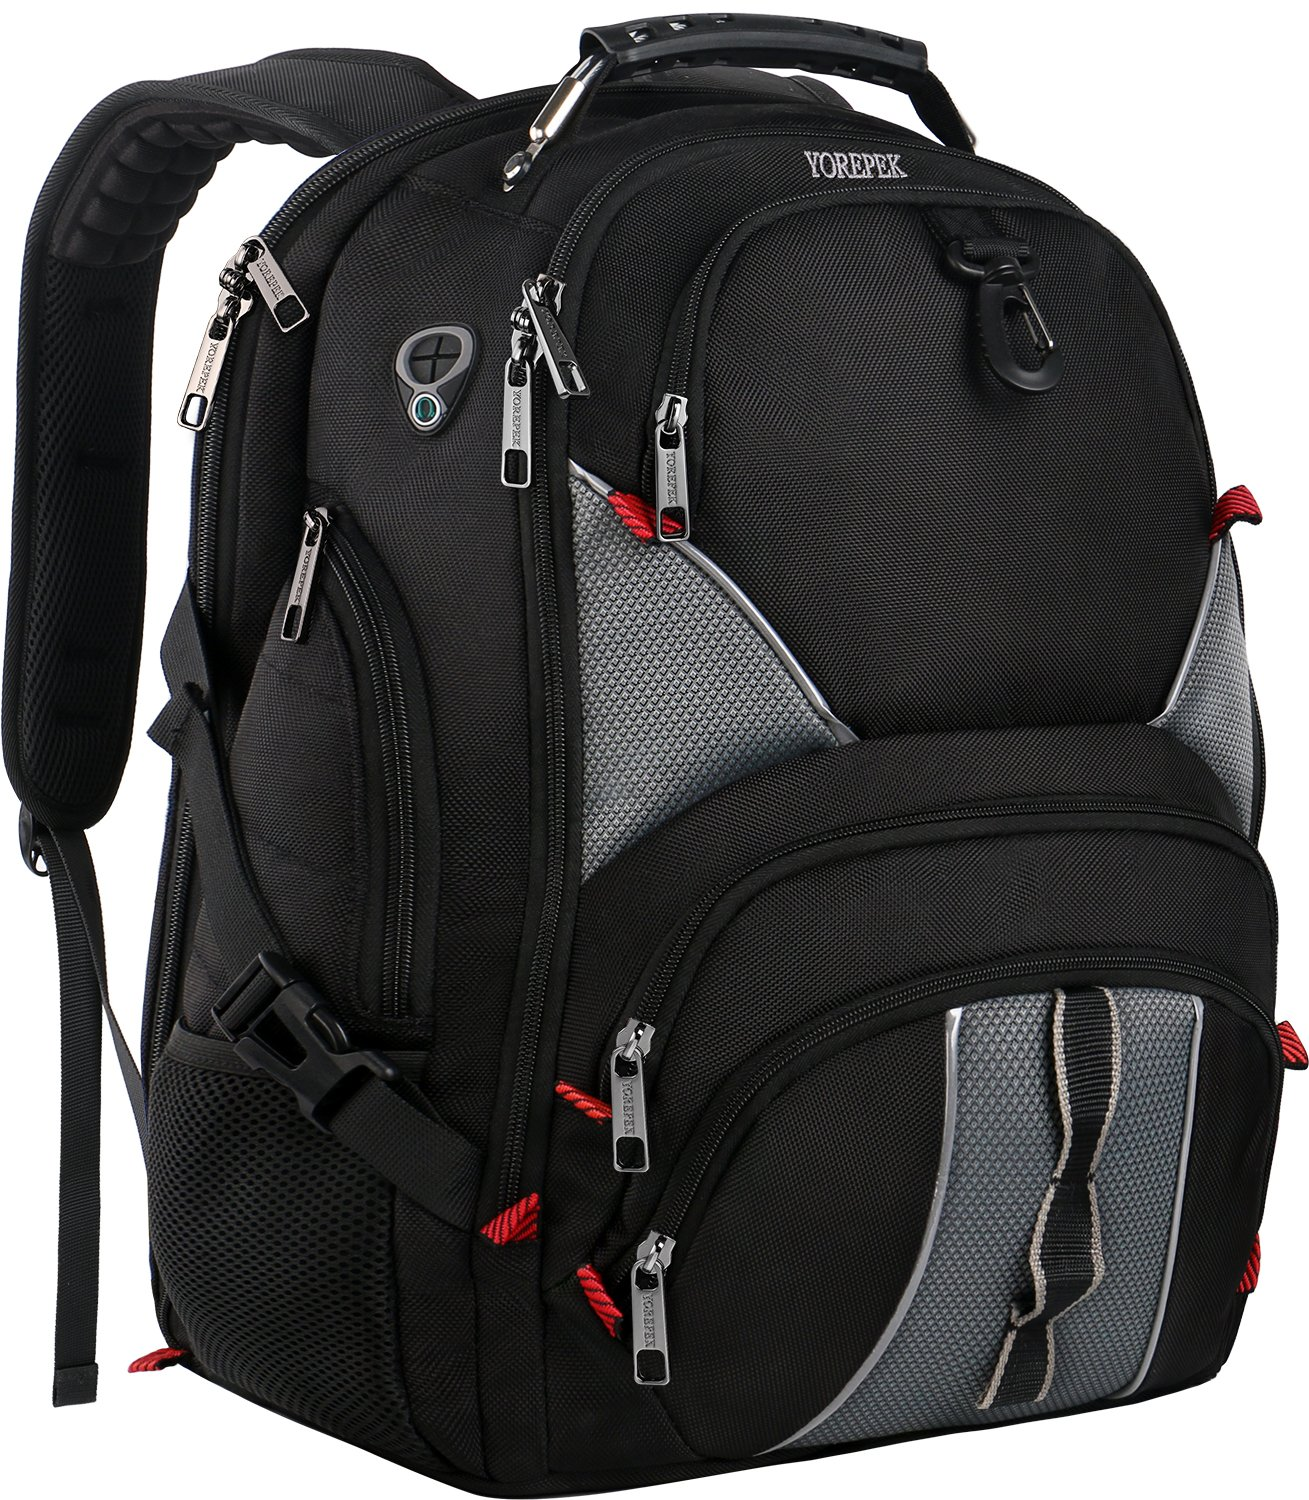 ab2a45bafe9a Amazon.com  17 Inch Laptop Backpack